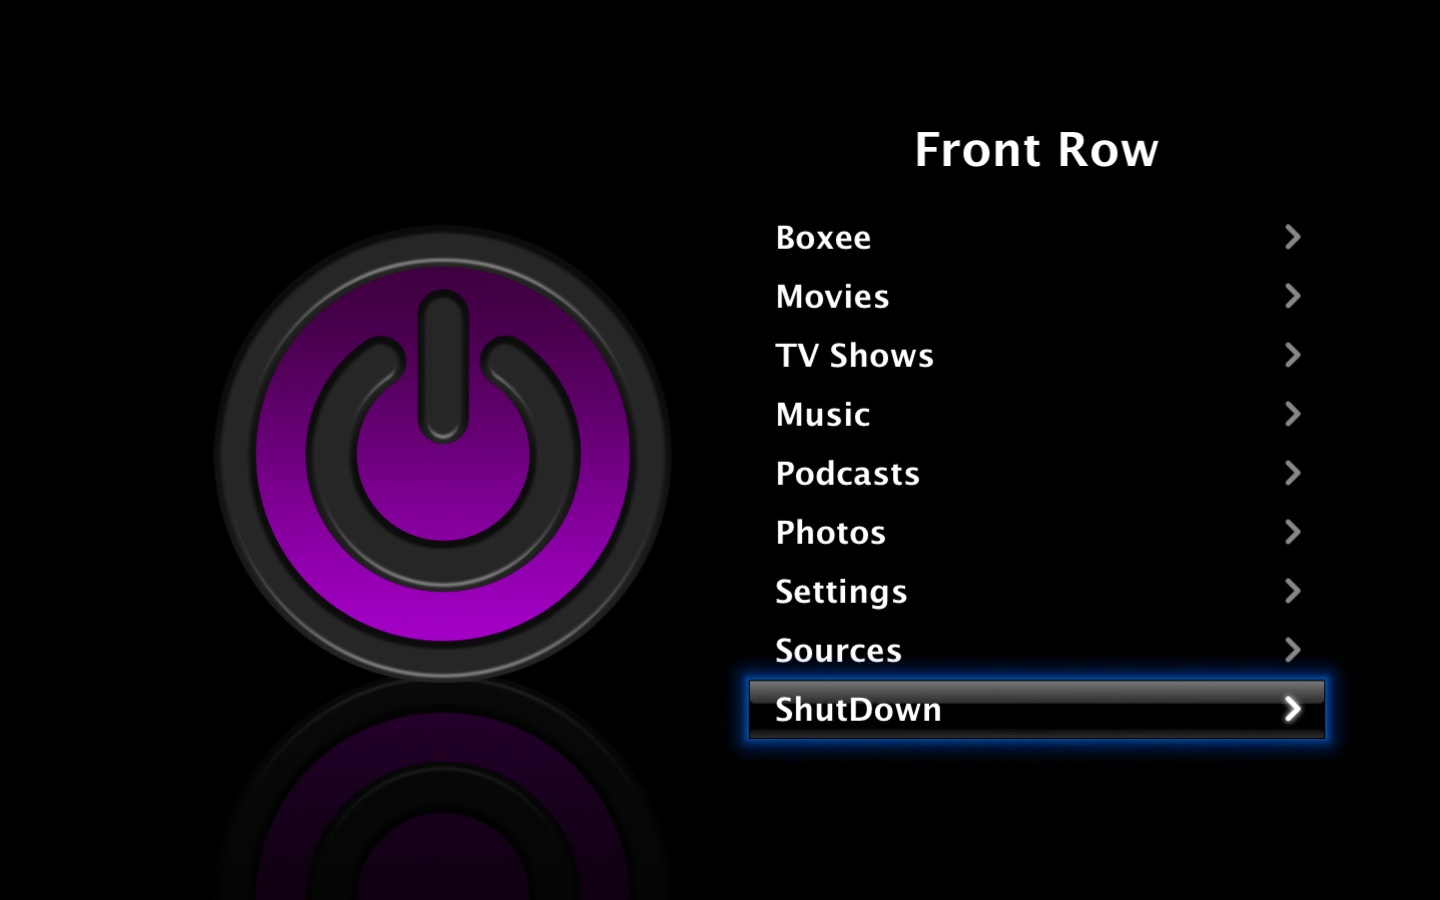 Shutdown_from_frontrow_v0.21b